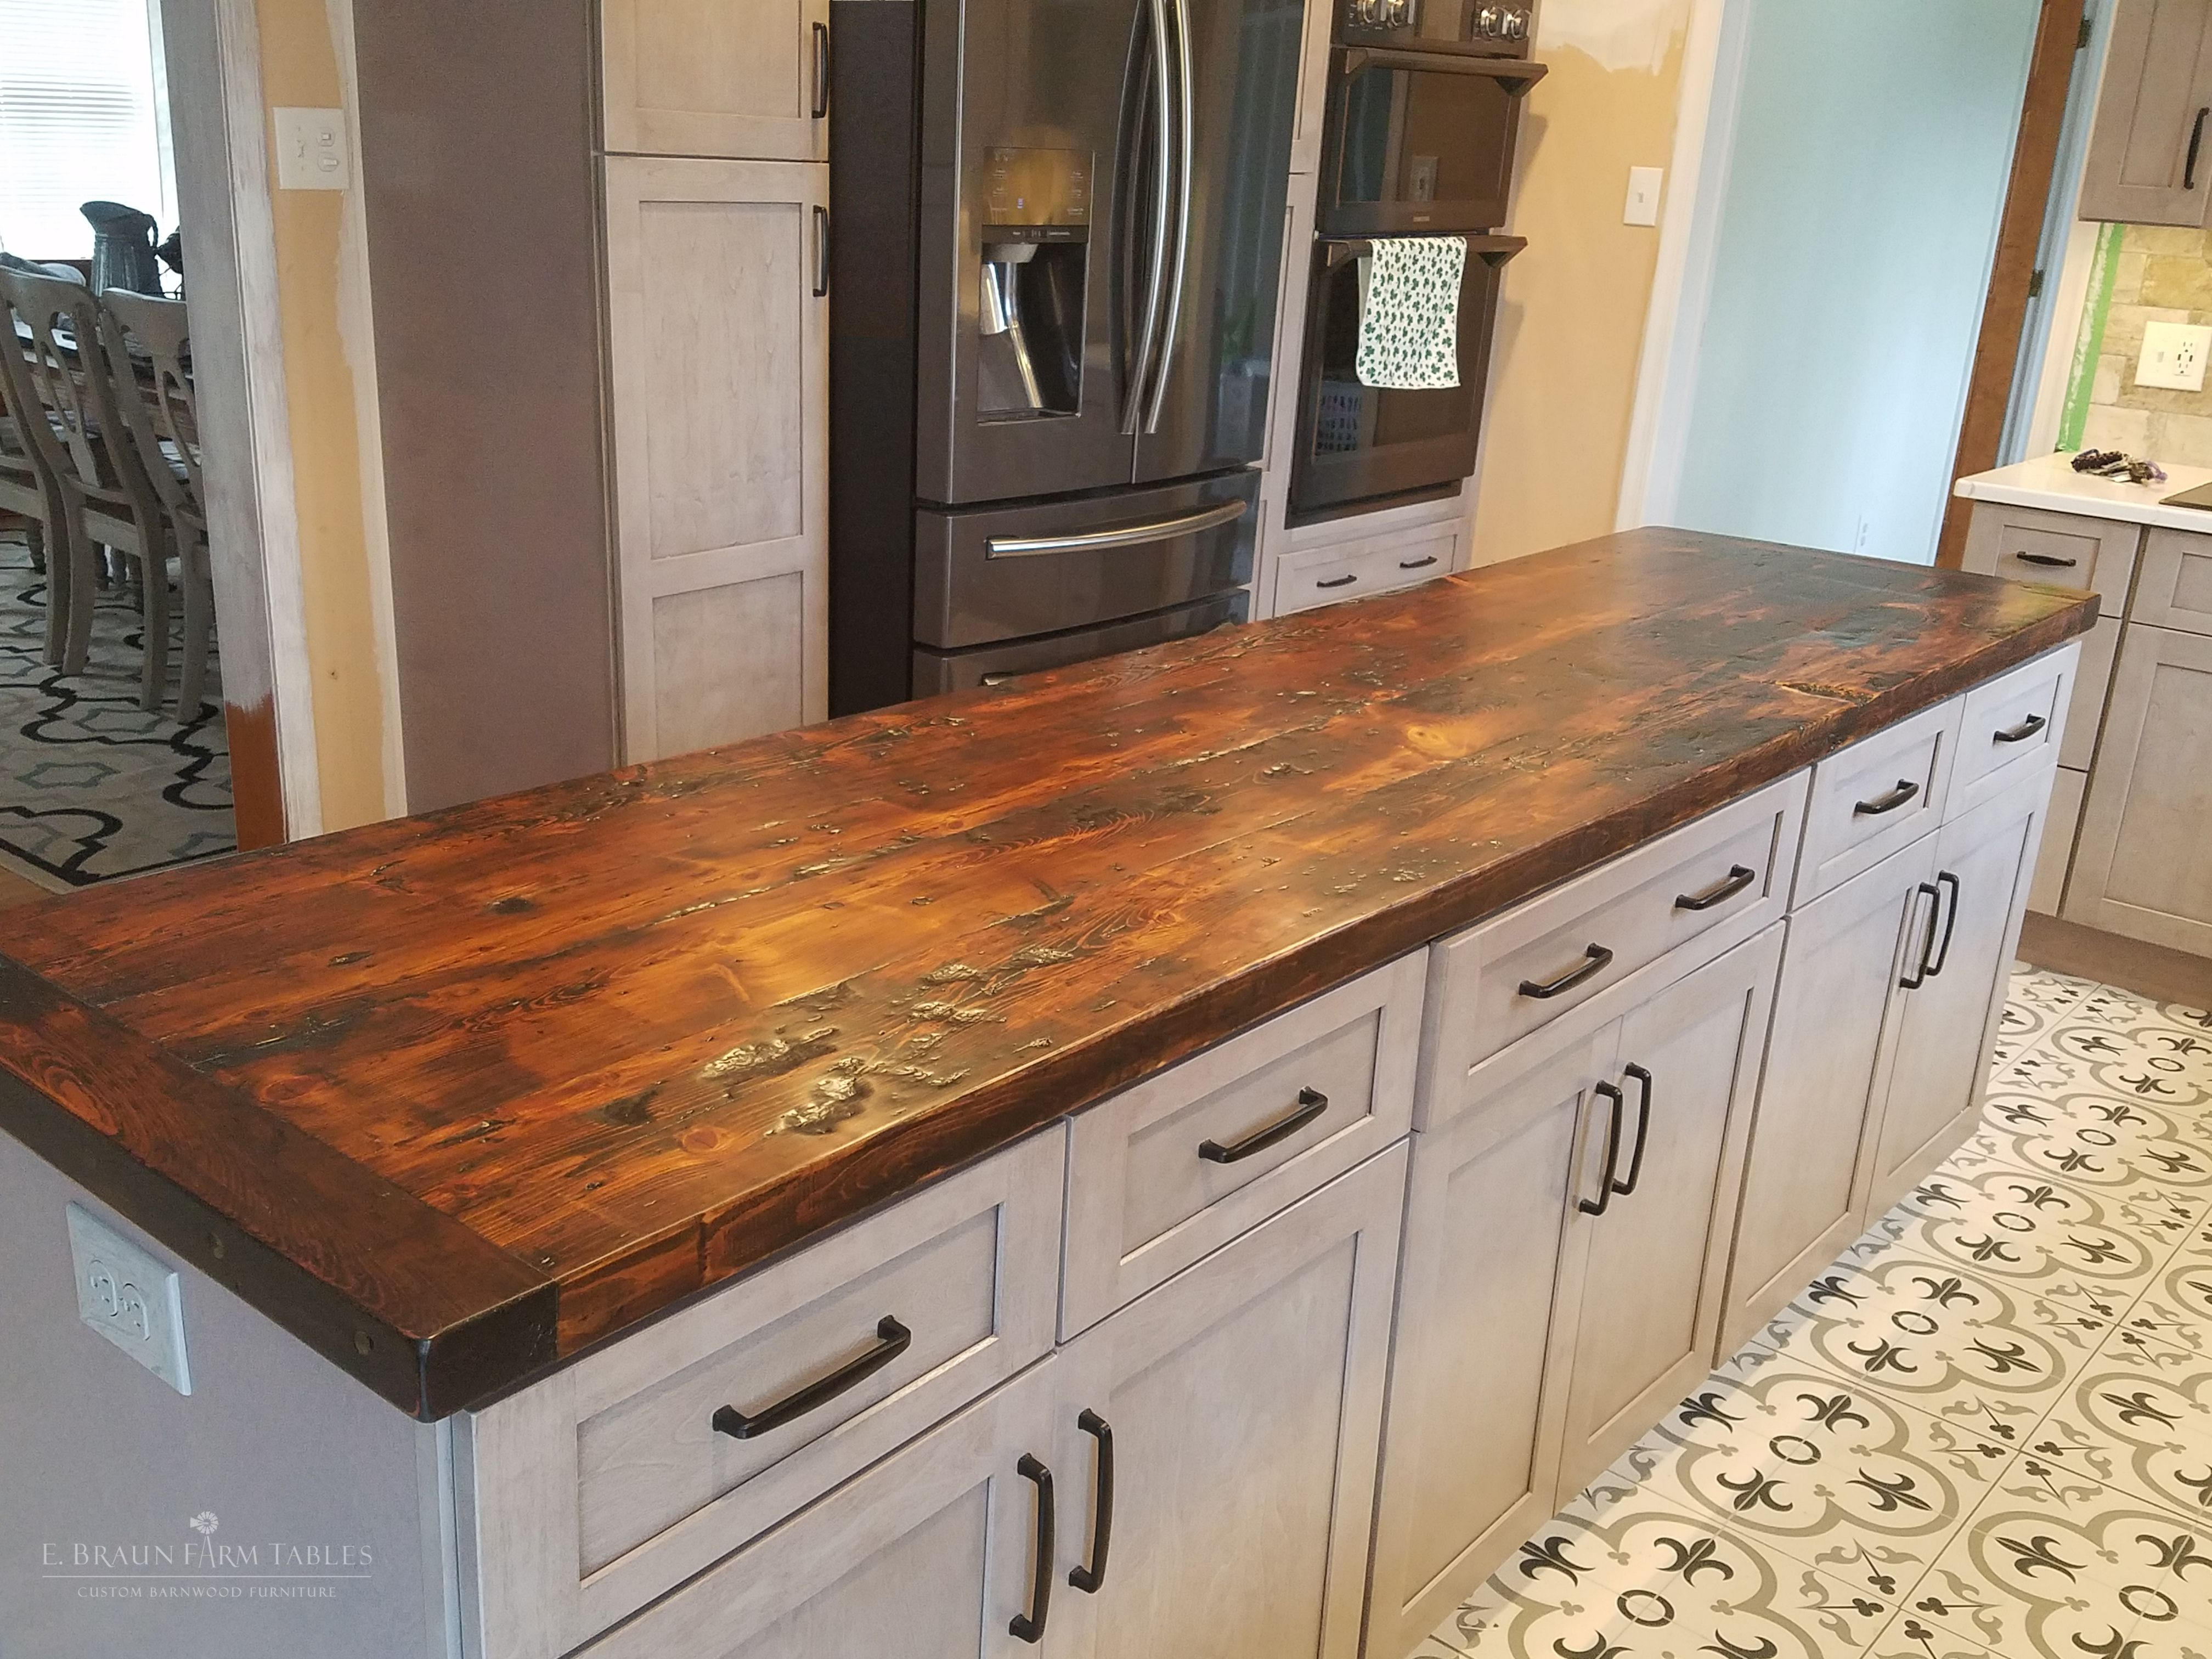 Island Top Handcrafted Using Reclaimed Mixed Character Yellow Pine Barn Wood 104 L X 26 Lake House Kitchen Diy Kitchen Countertops Wood Countertops Kitchen